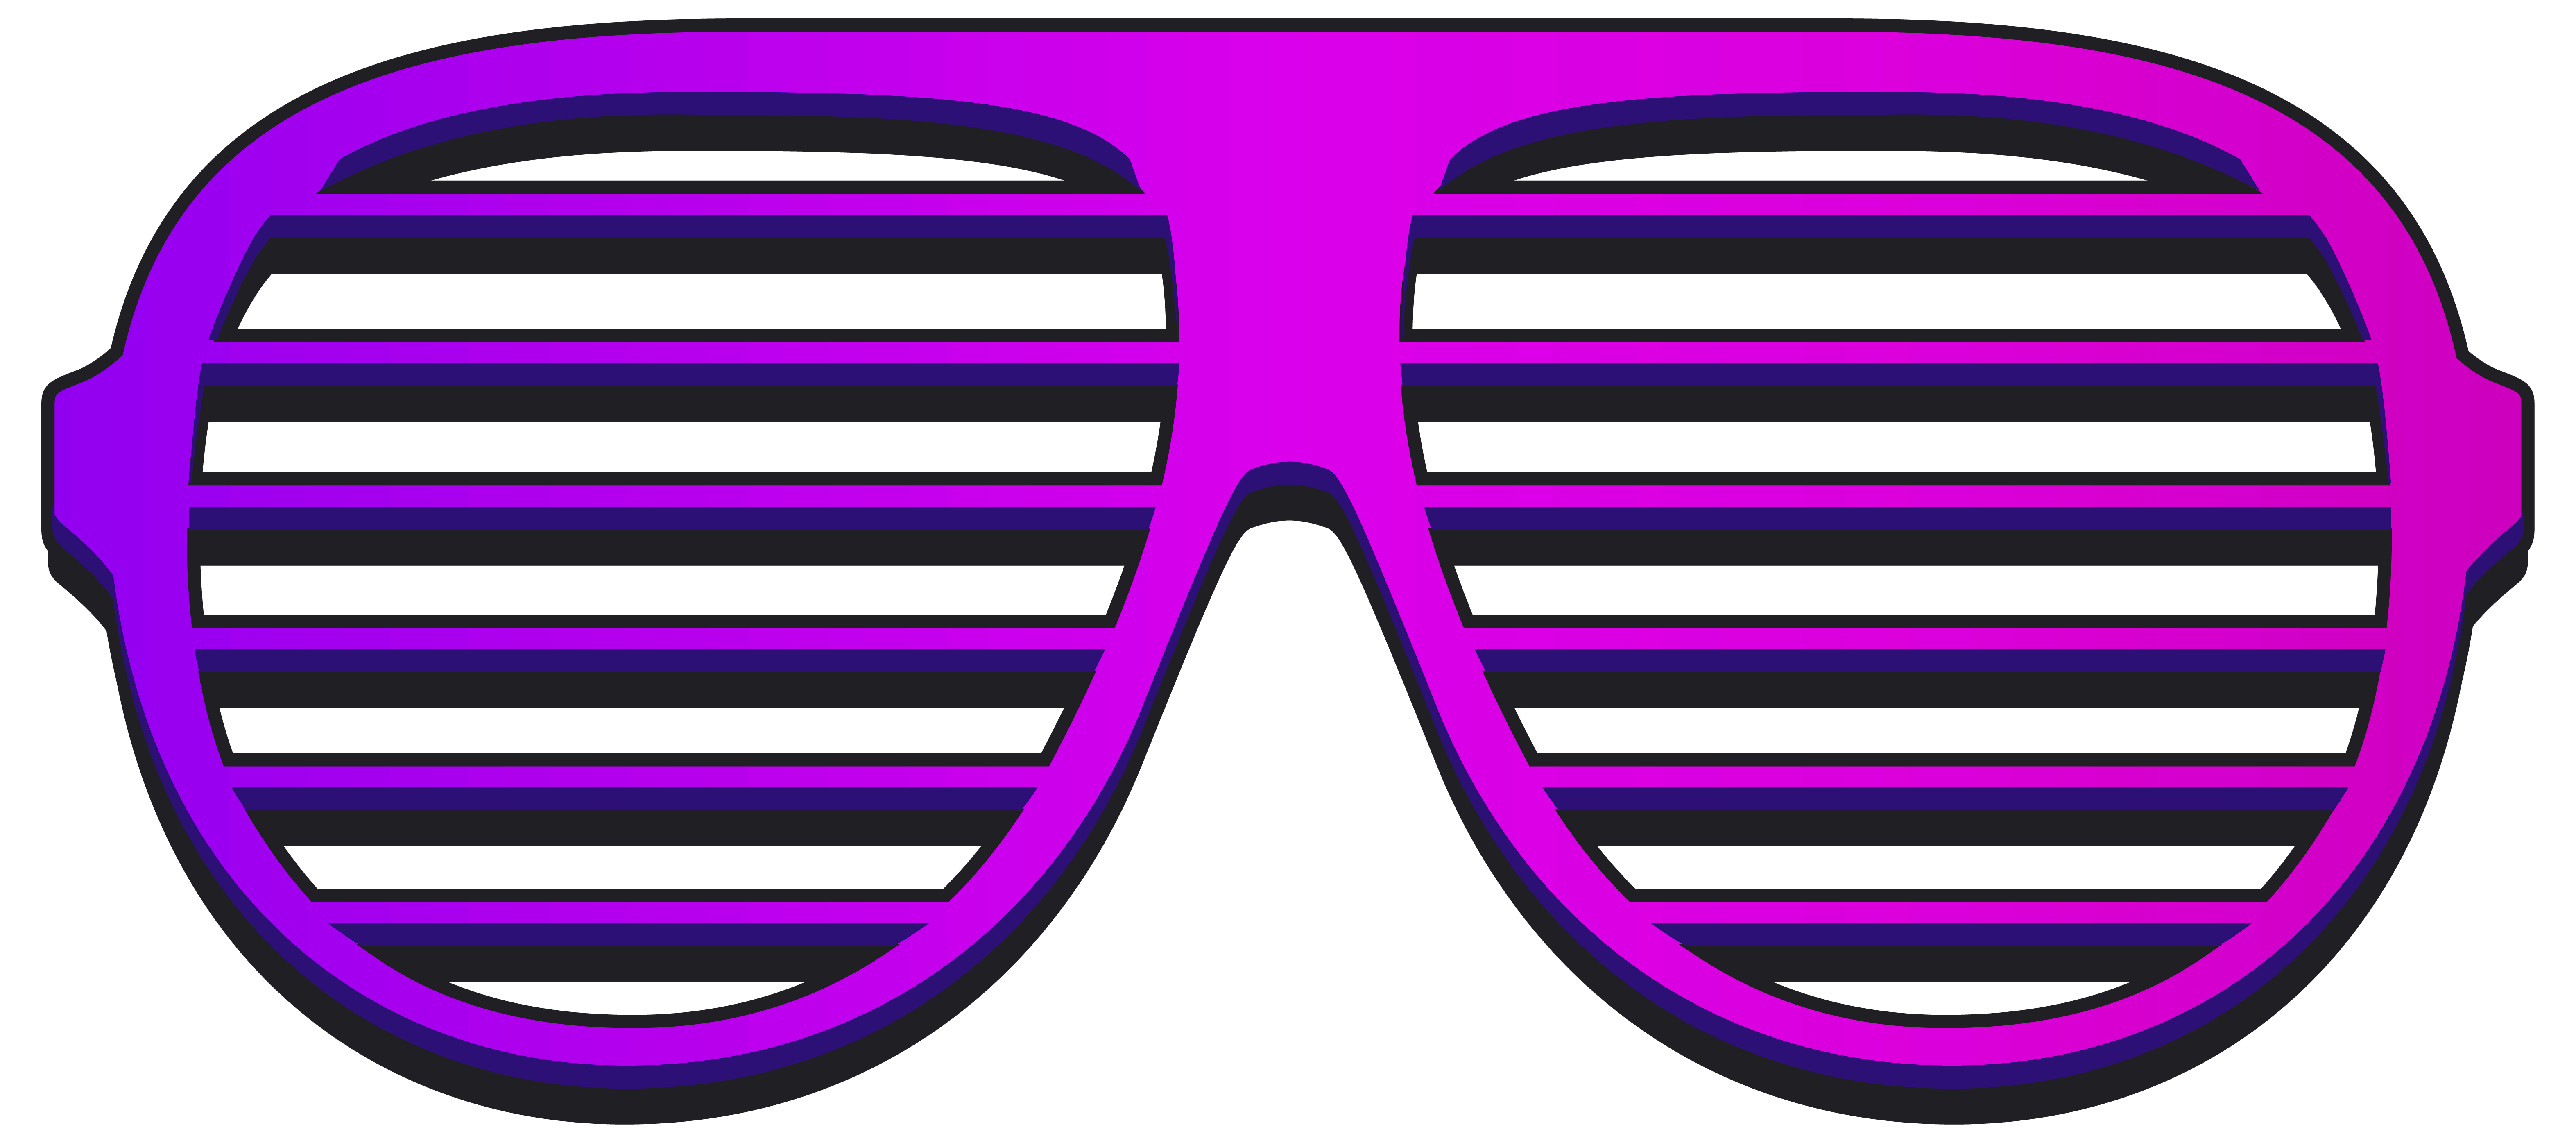 png royalty free Shutter shades png image. Cool clipart.